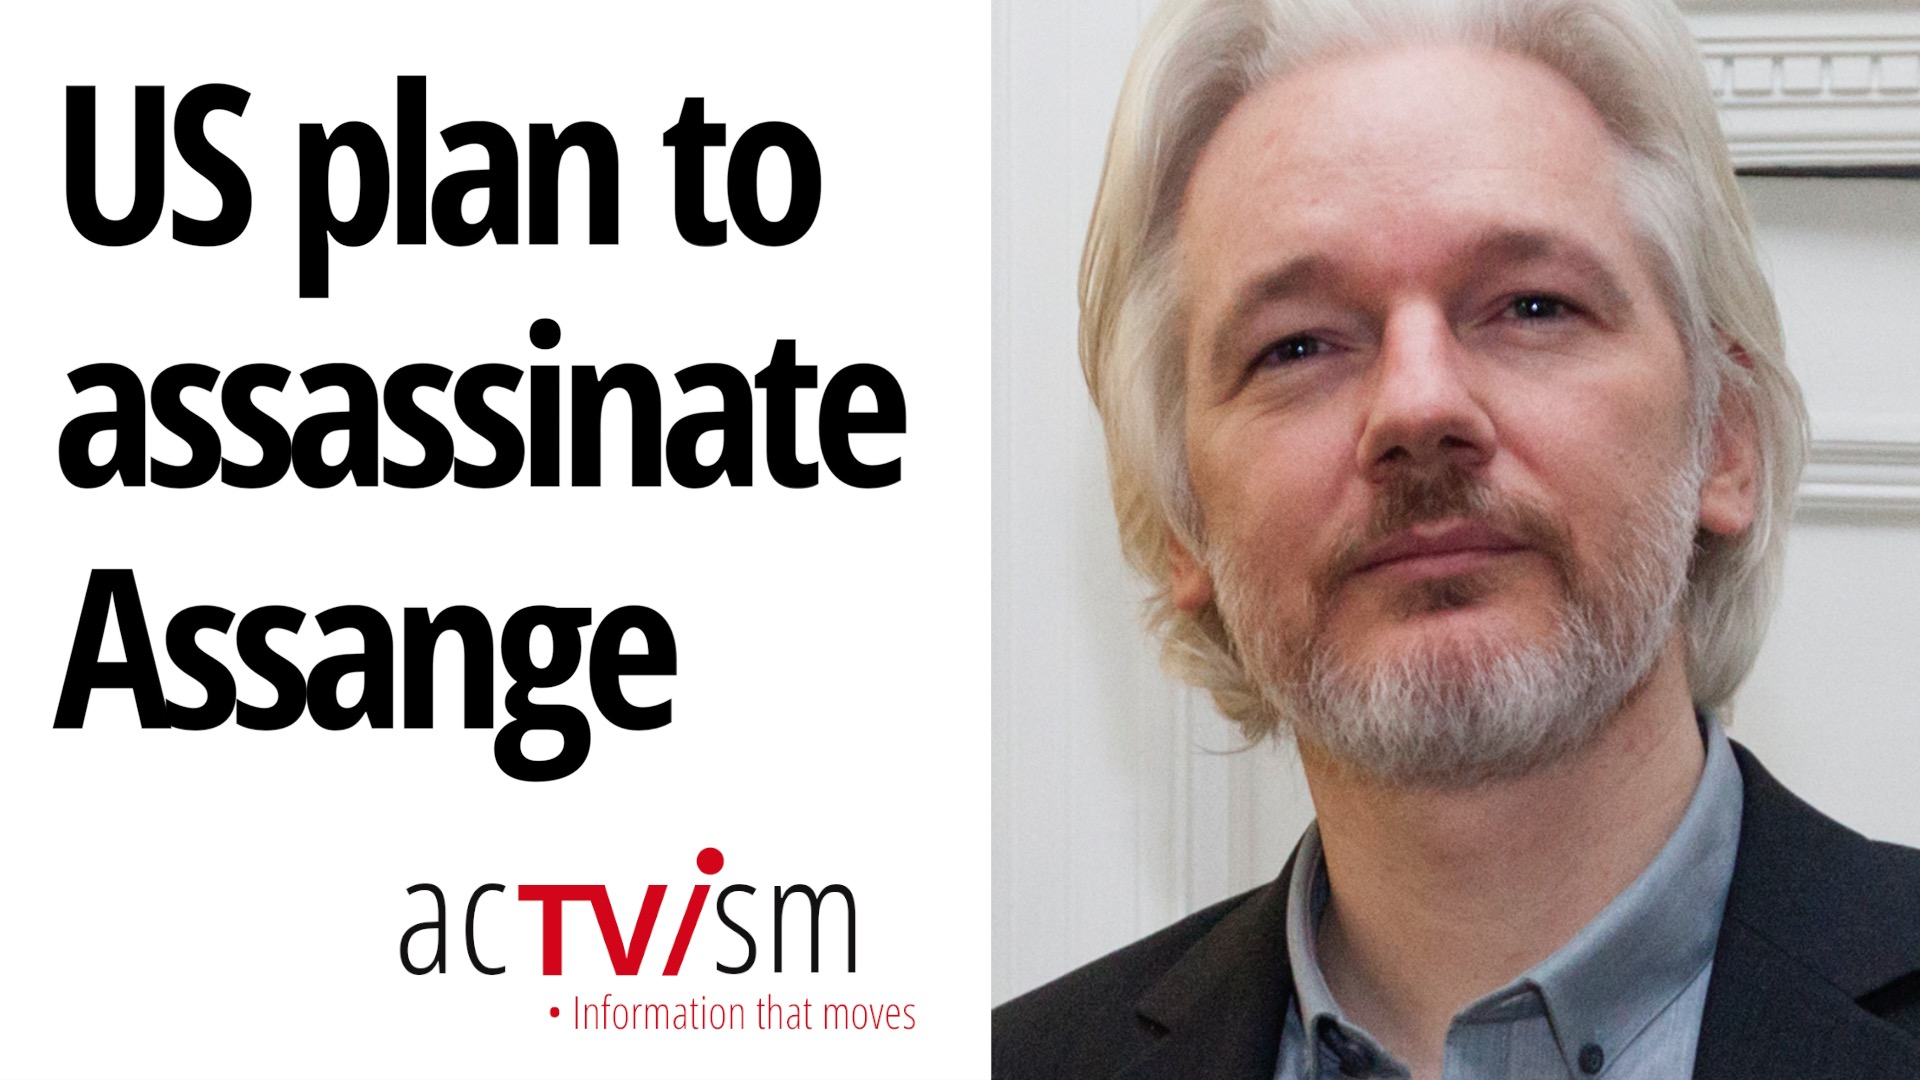 US Spied on Assange & plotted to assassinate him